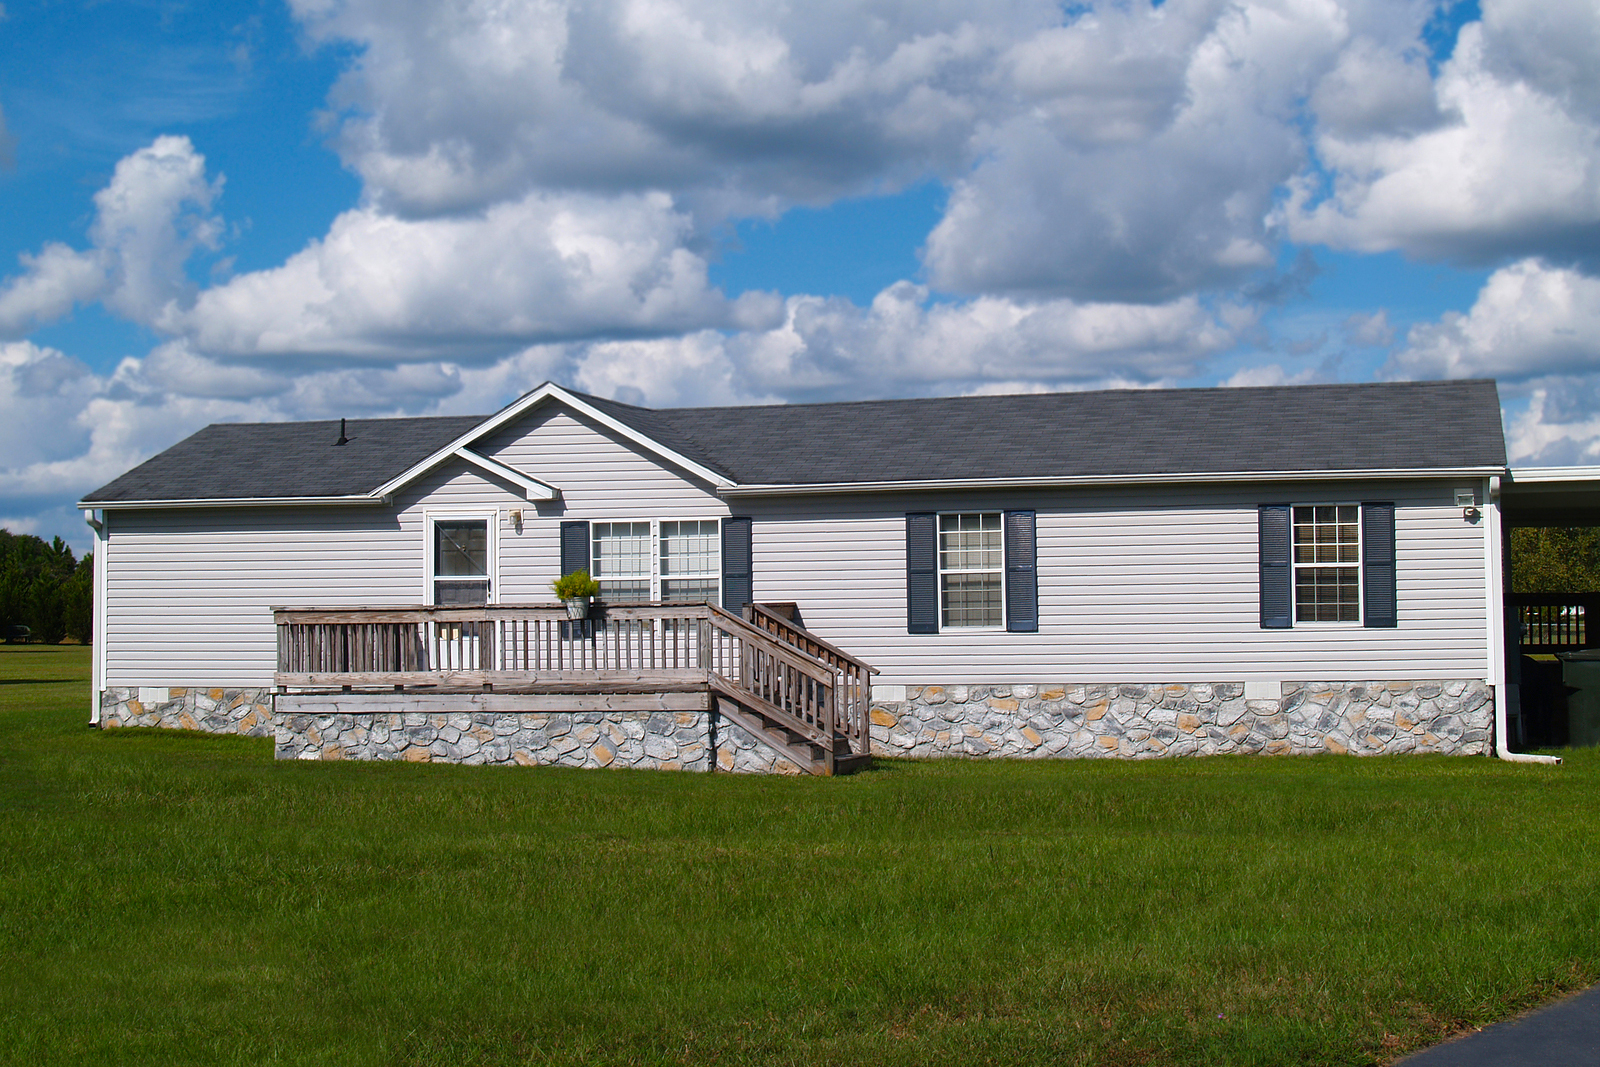 There are several differences between a manufactured home and a single-family home.